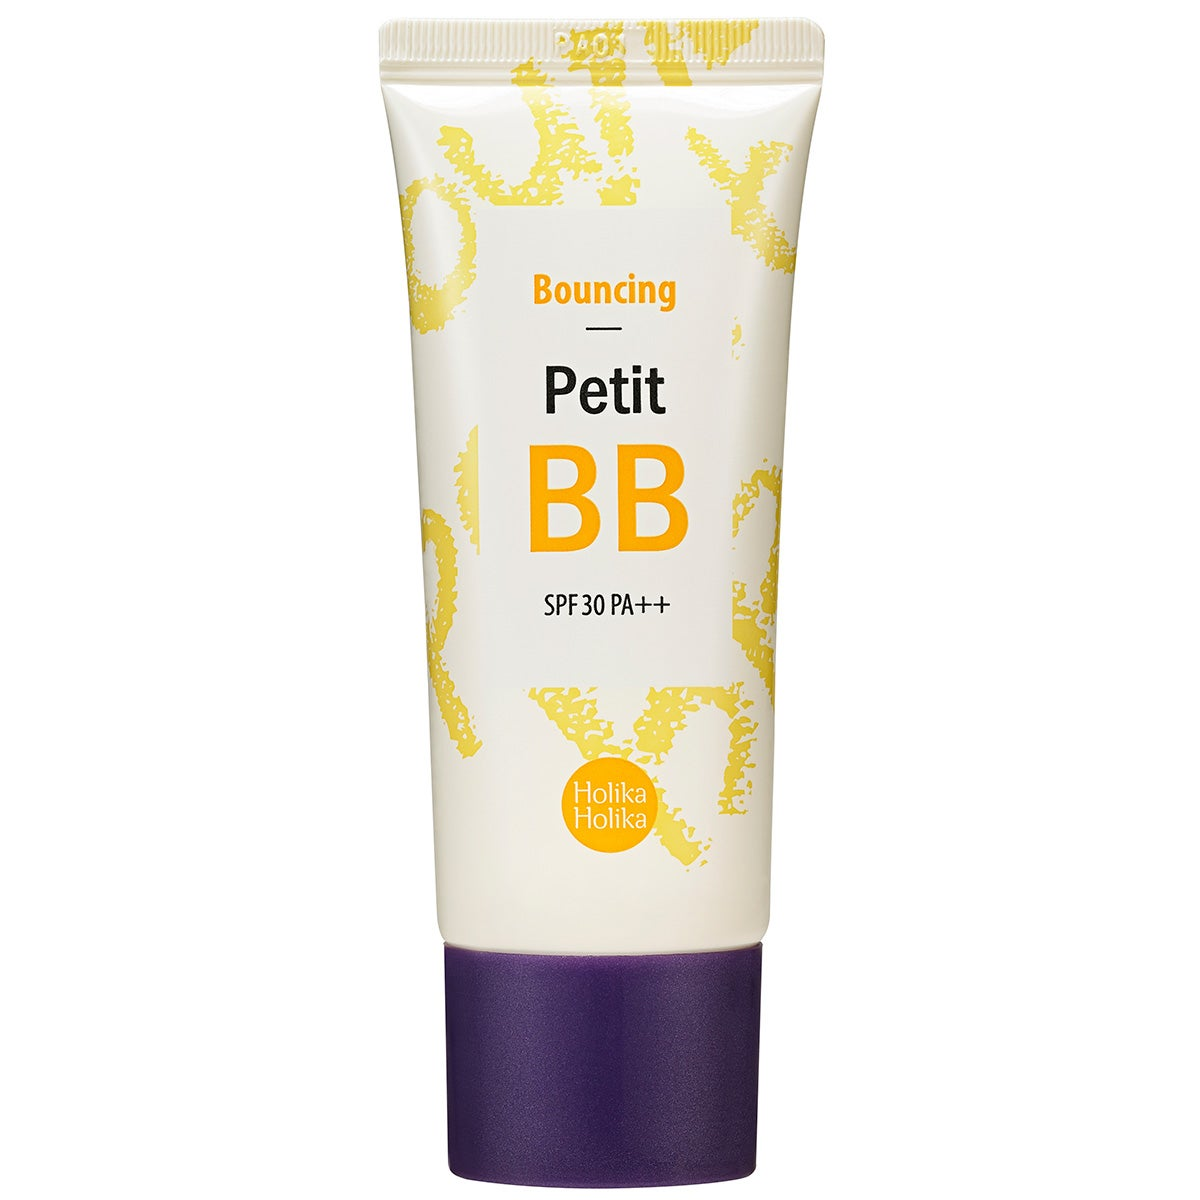 Bouncing Petit BB Cream, 30 ml Holika Holika Dagkräm